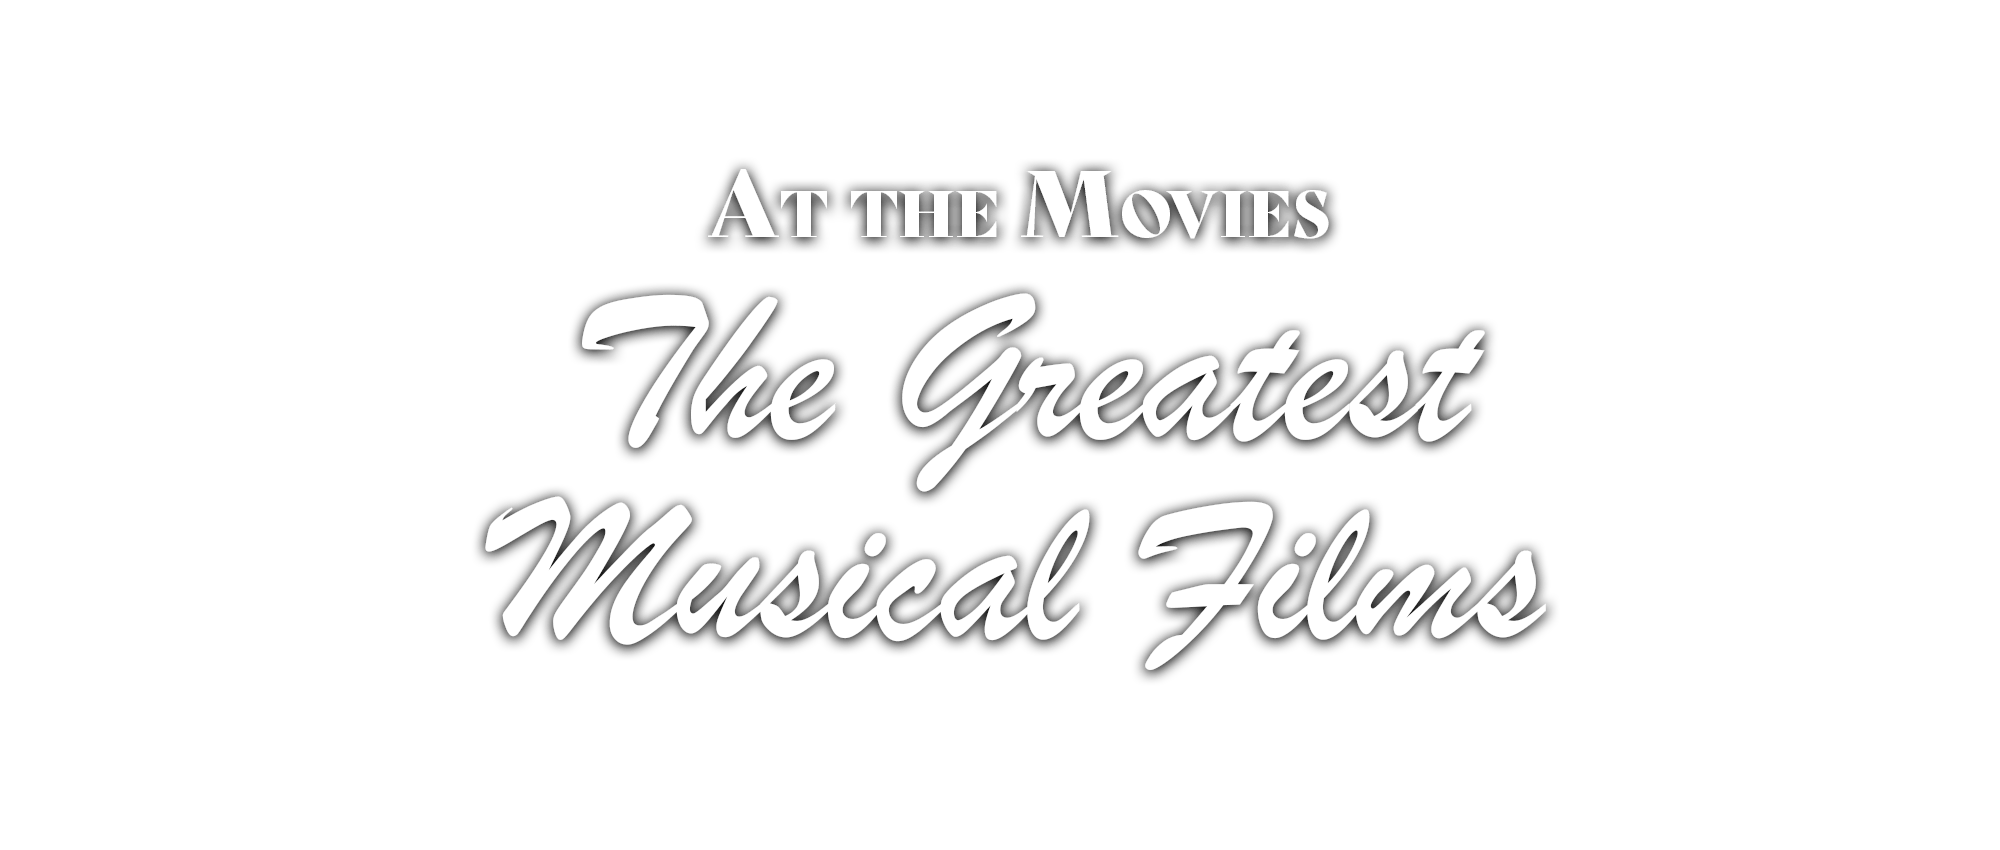 At the Movies—The Greatest Musical Films